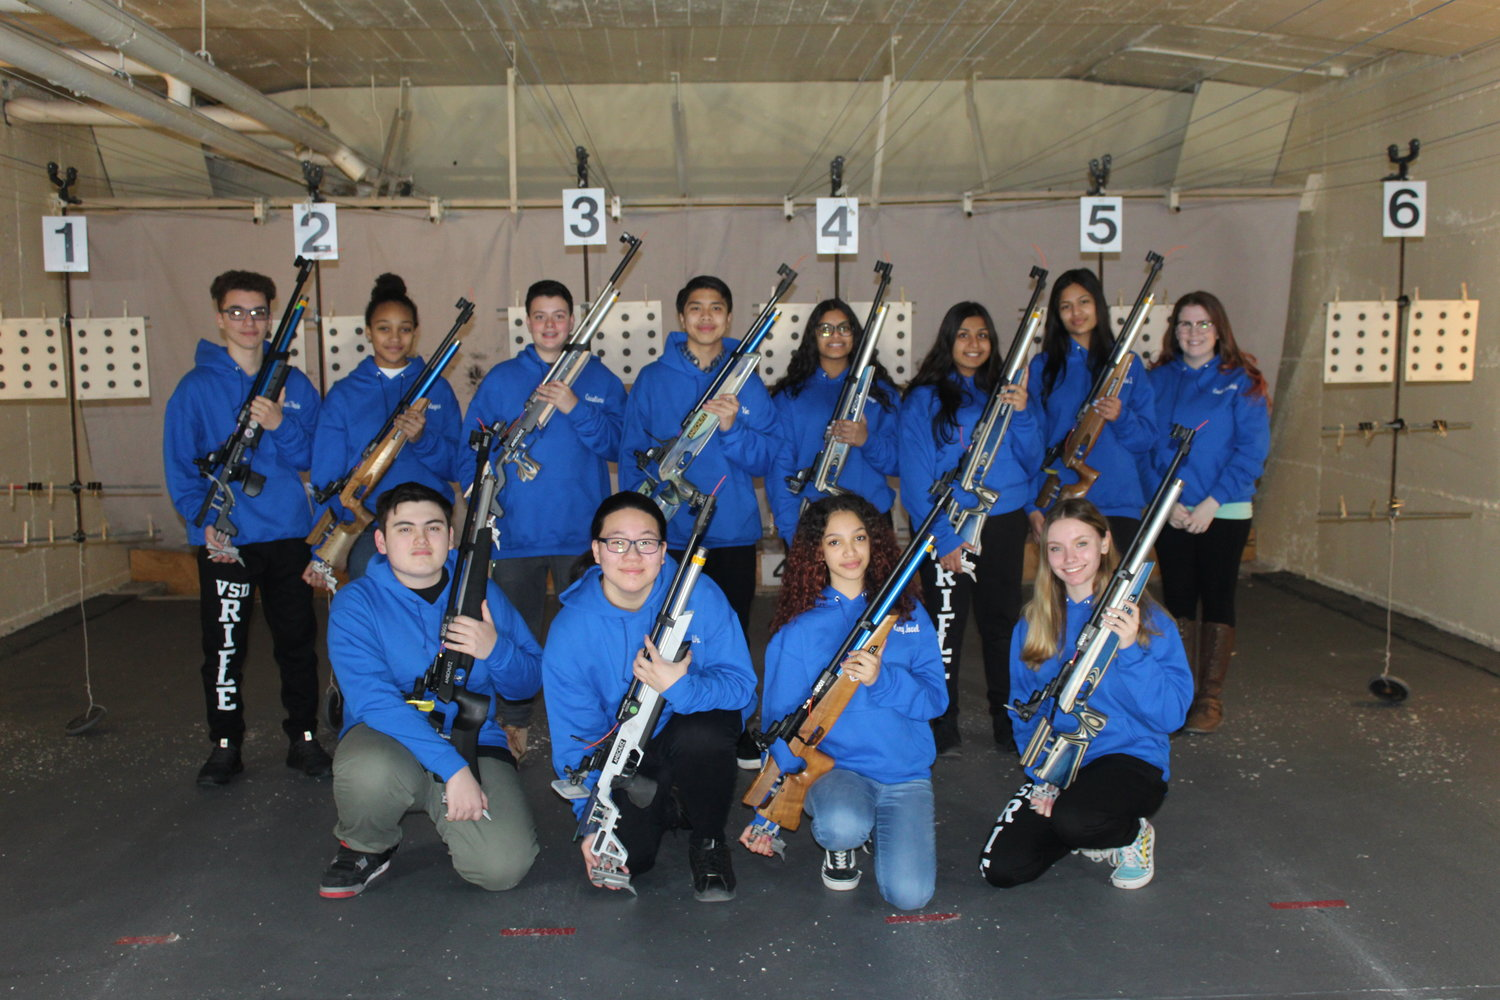 The Valley Stream Central High School District varsity rifle team closed out its second consecutive undefeated season this year.